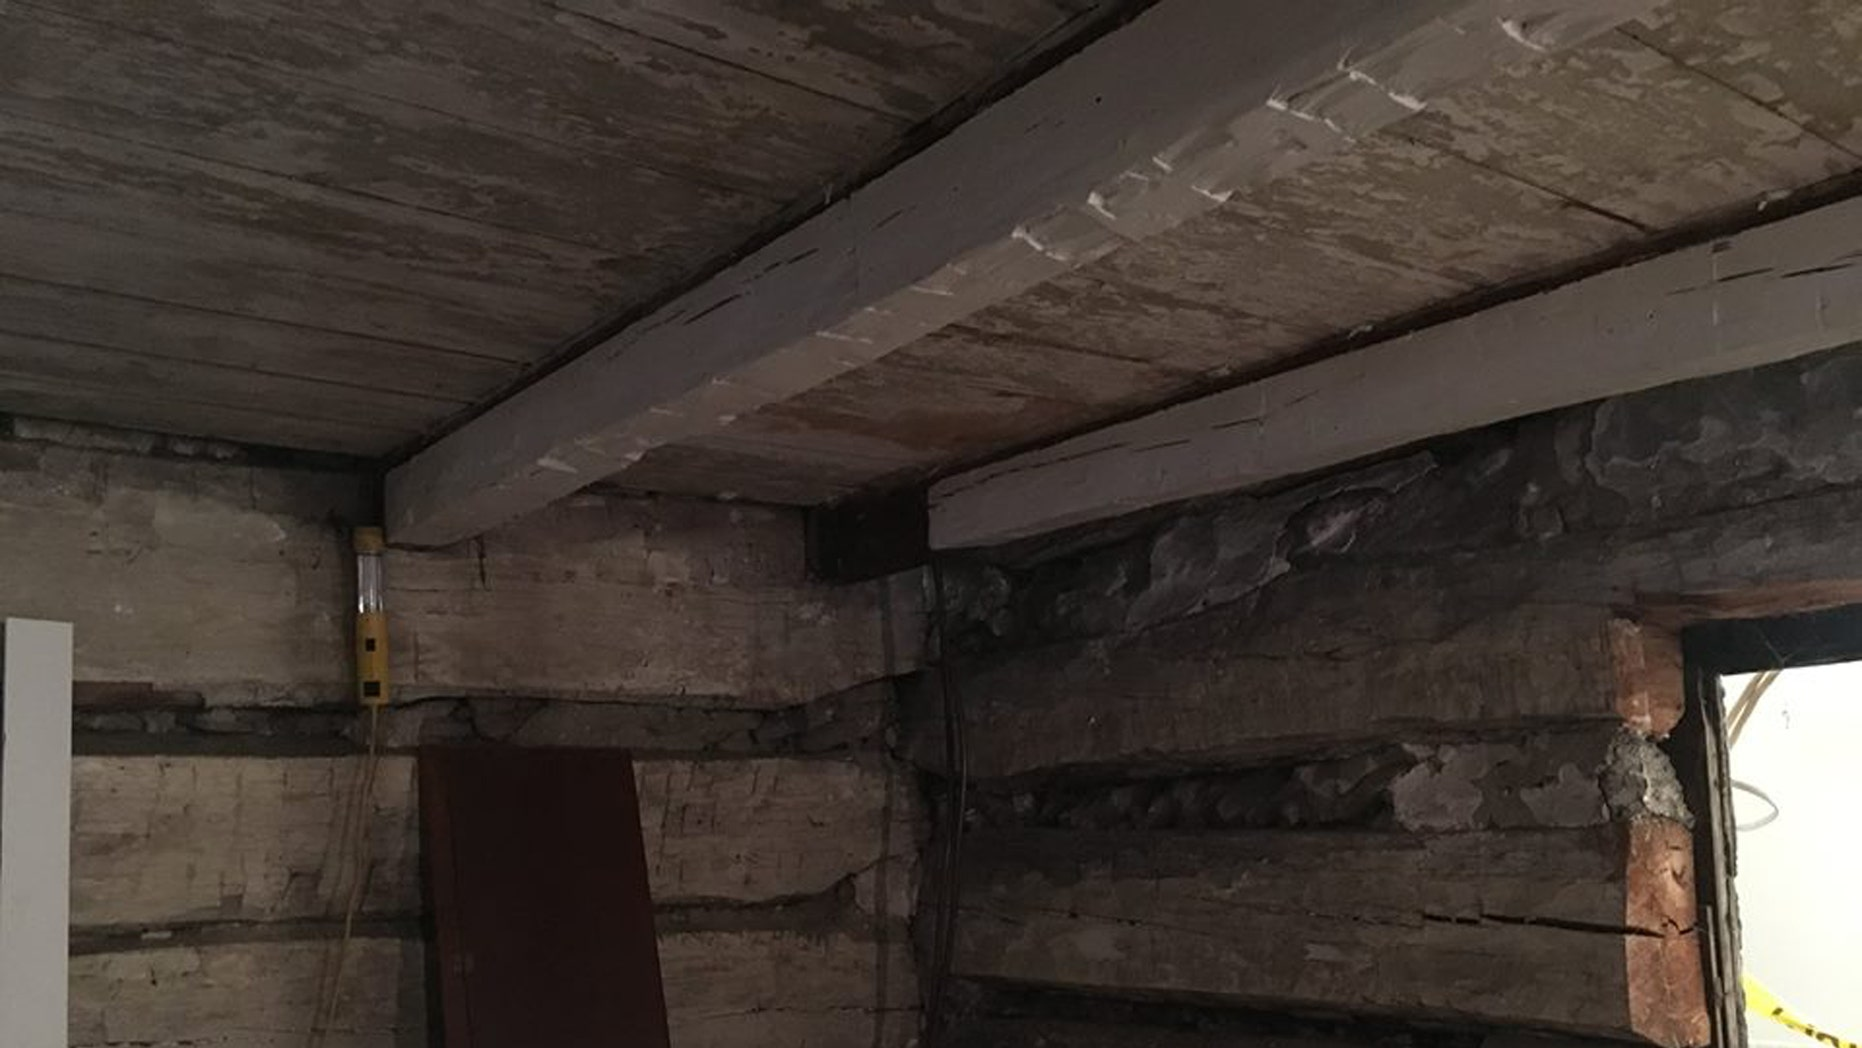 A log cabin in Dublin, Ohio was discovered inside another house during a home renovation project. (Credit: Dr. Kevin Kemp, Facebook)